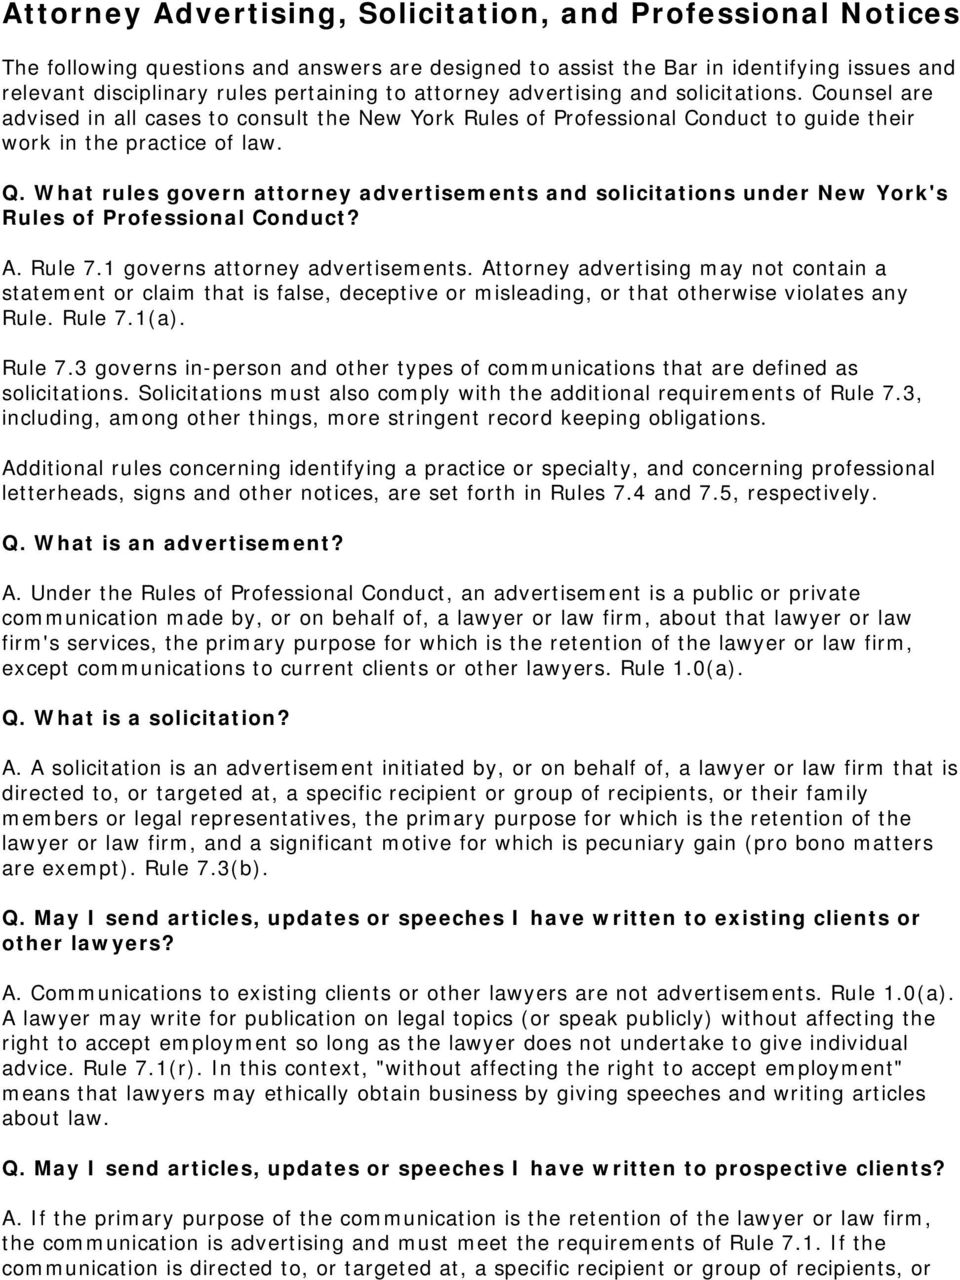 What rules govern attorney advertisements and solicitations under New York's Rules of Professional Conduct? A. Rule 7.1 governs attorney advertisements.